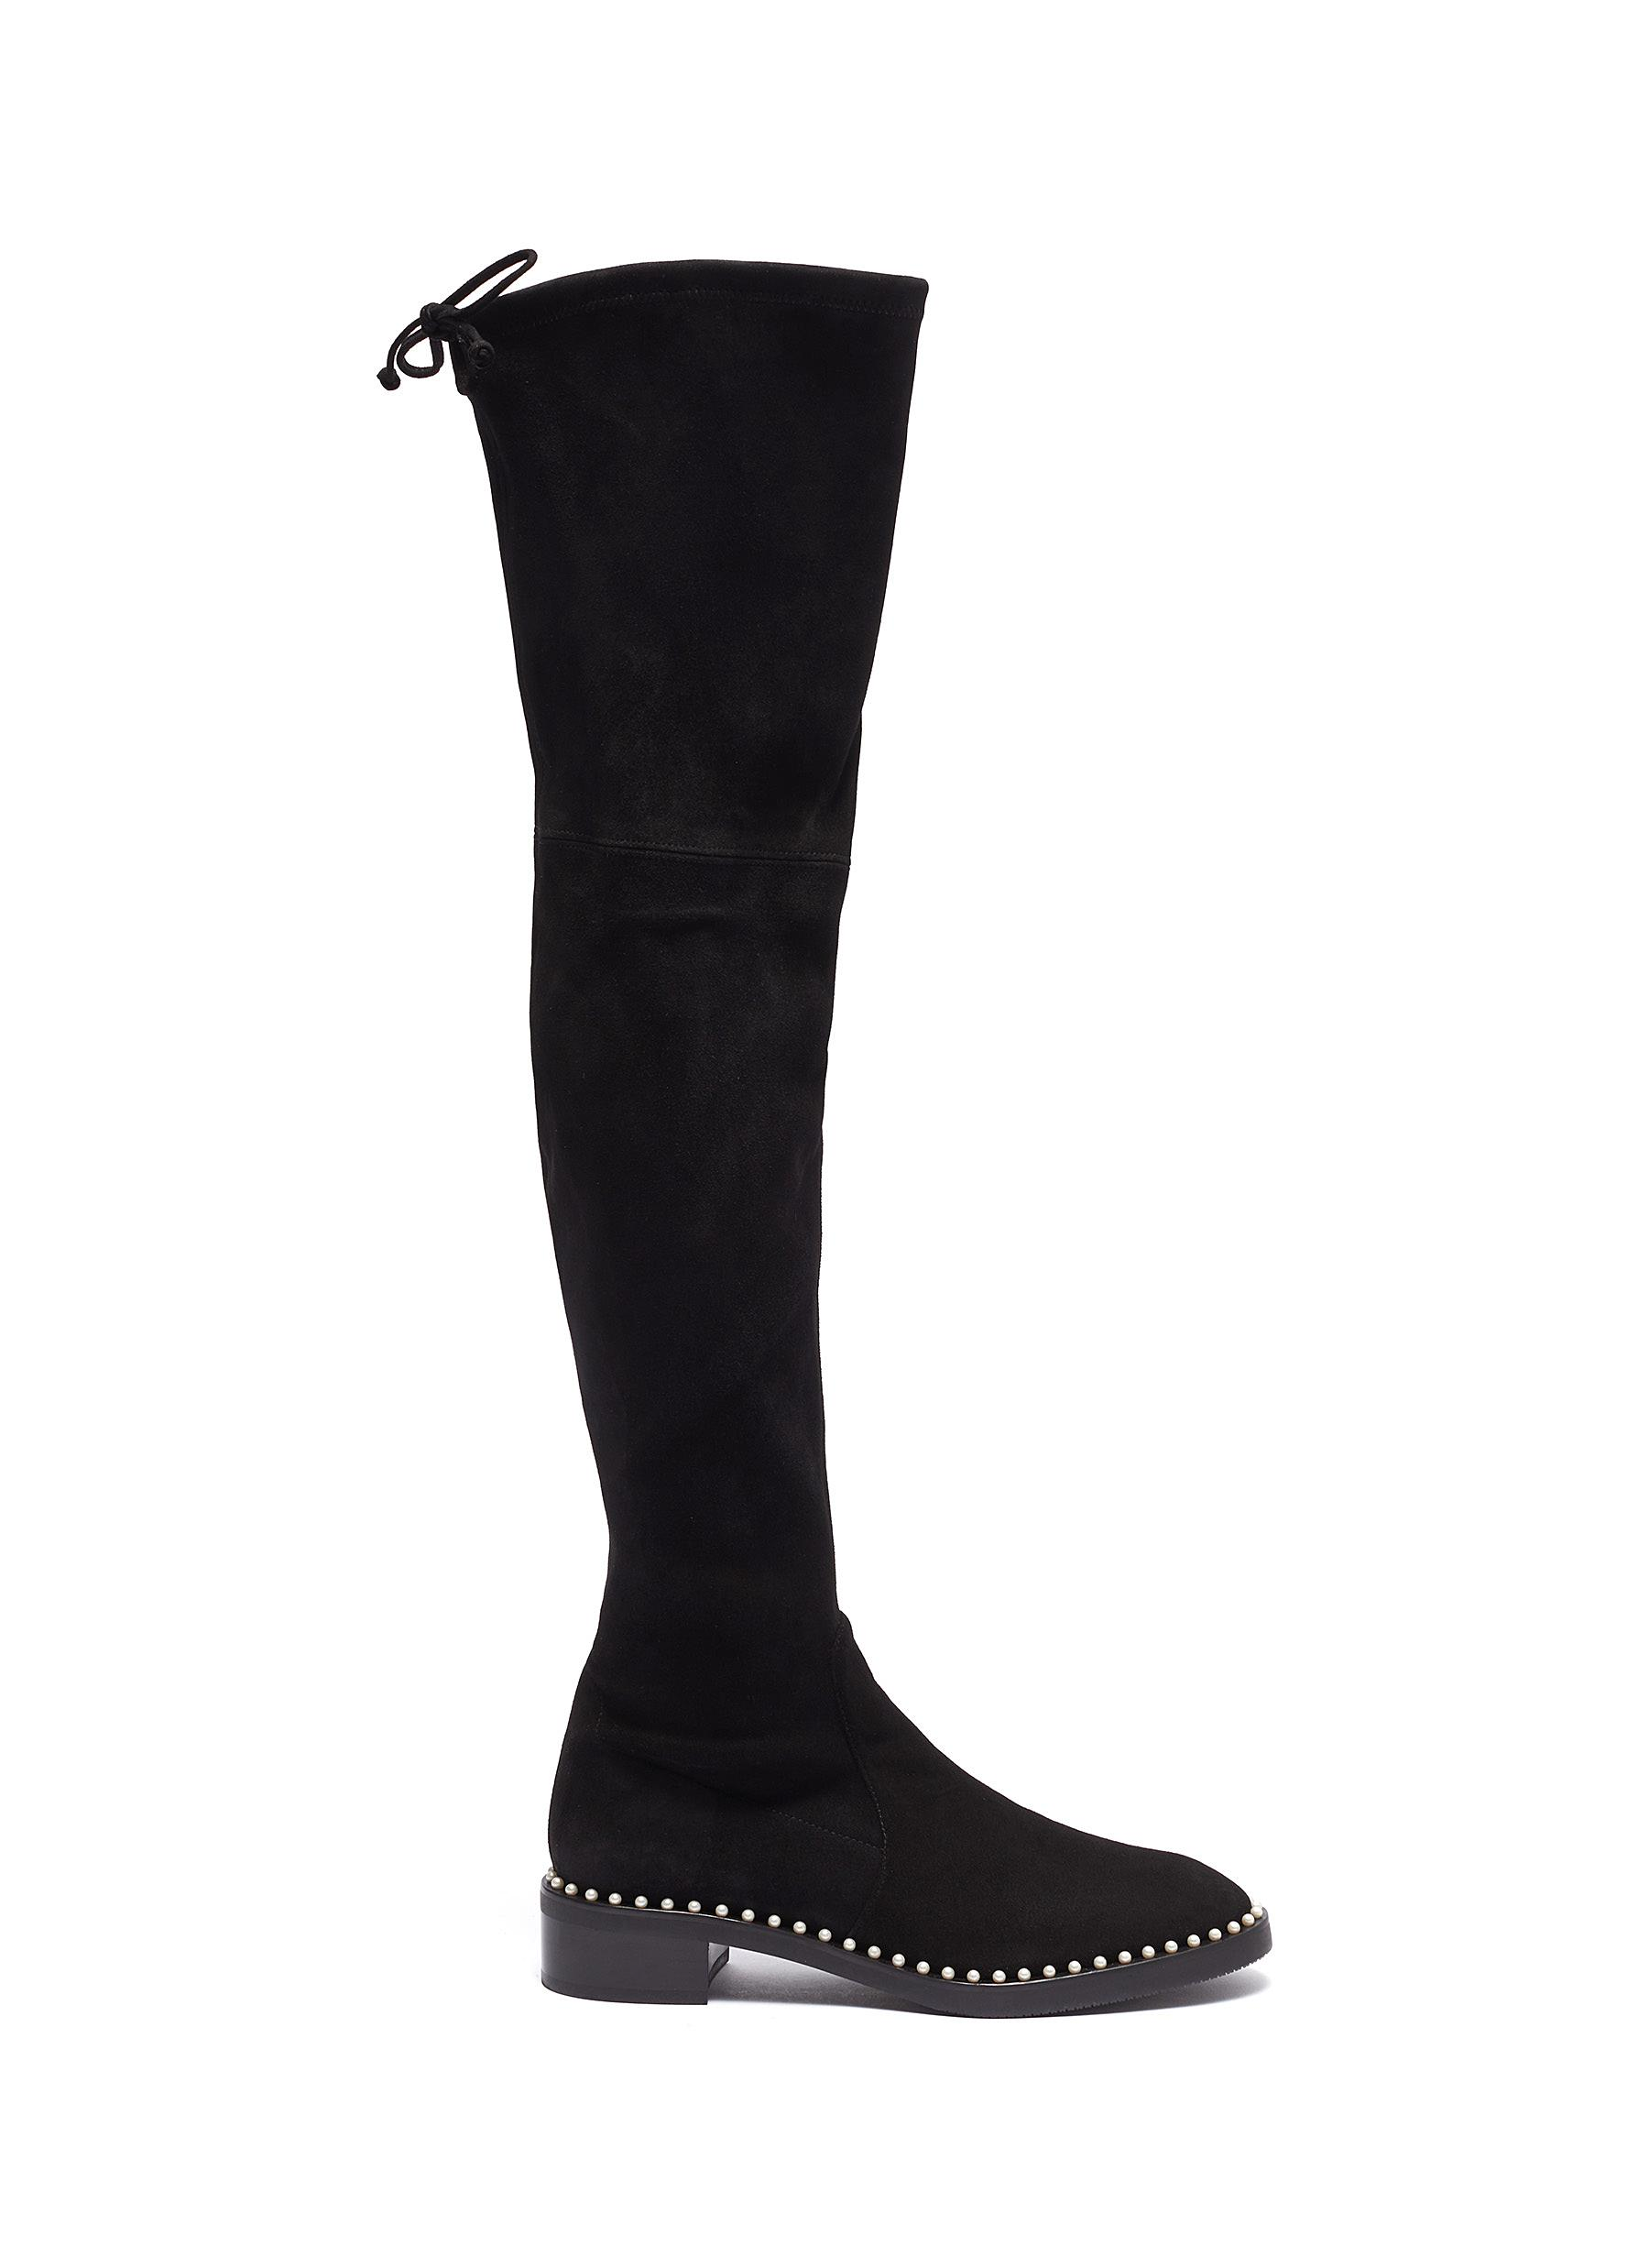 Lowland faux pearl welt embellished thigh high suede boots by Stuart Weitzman